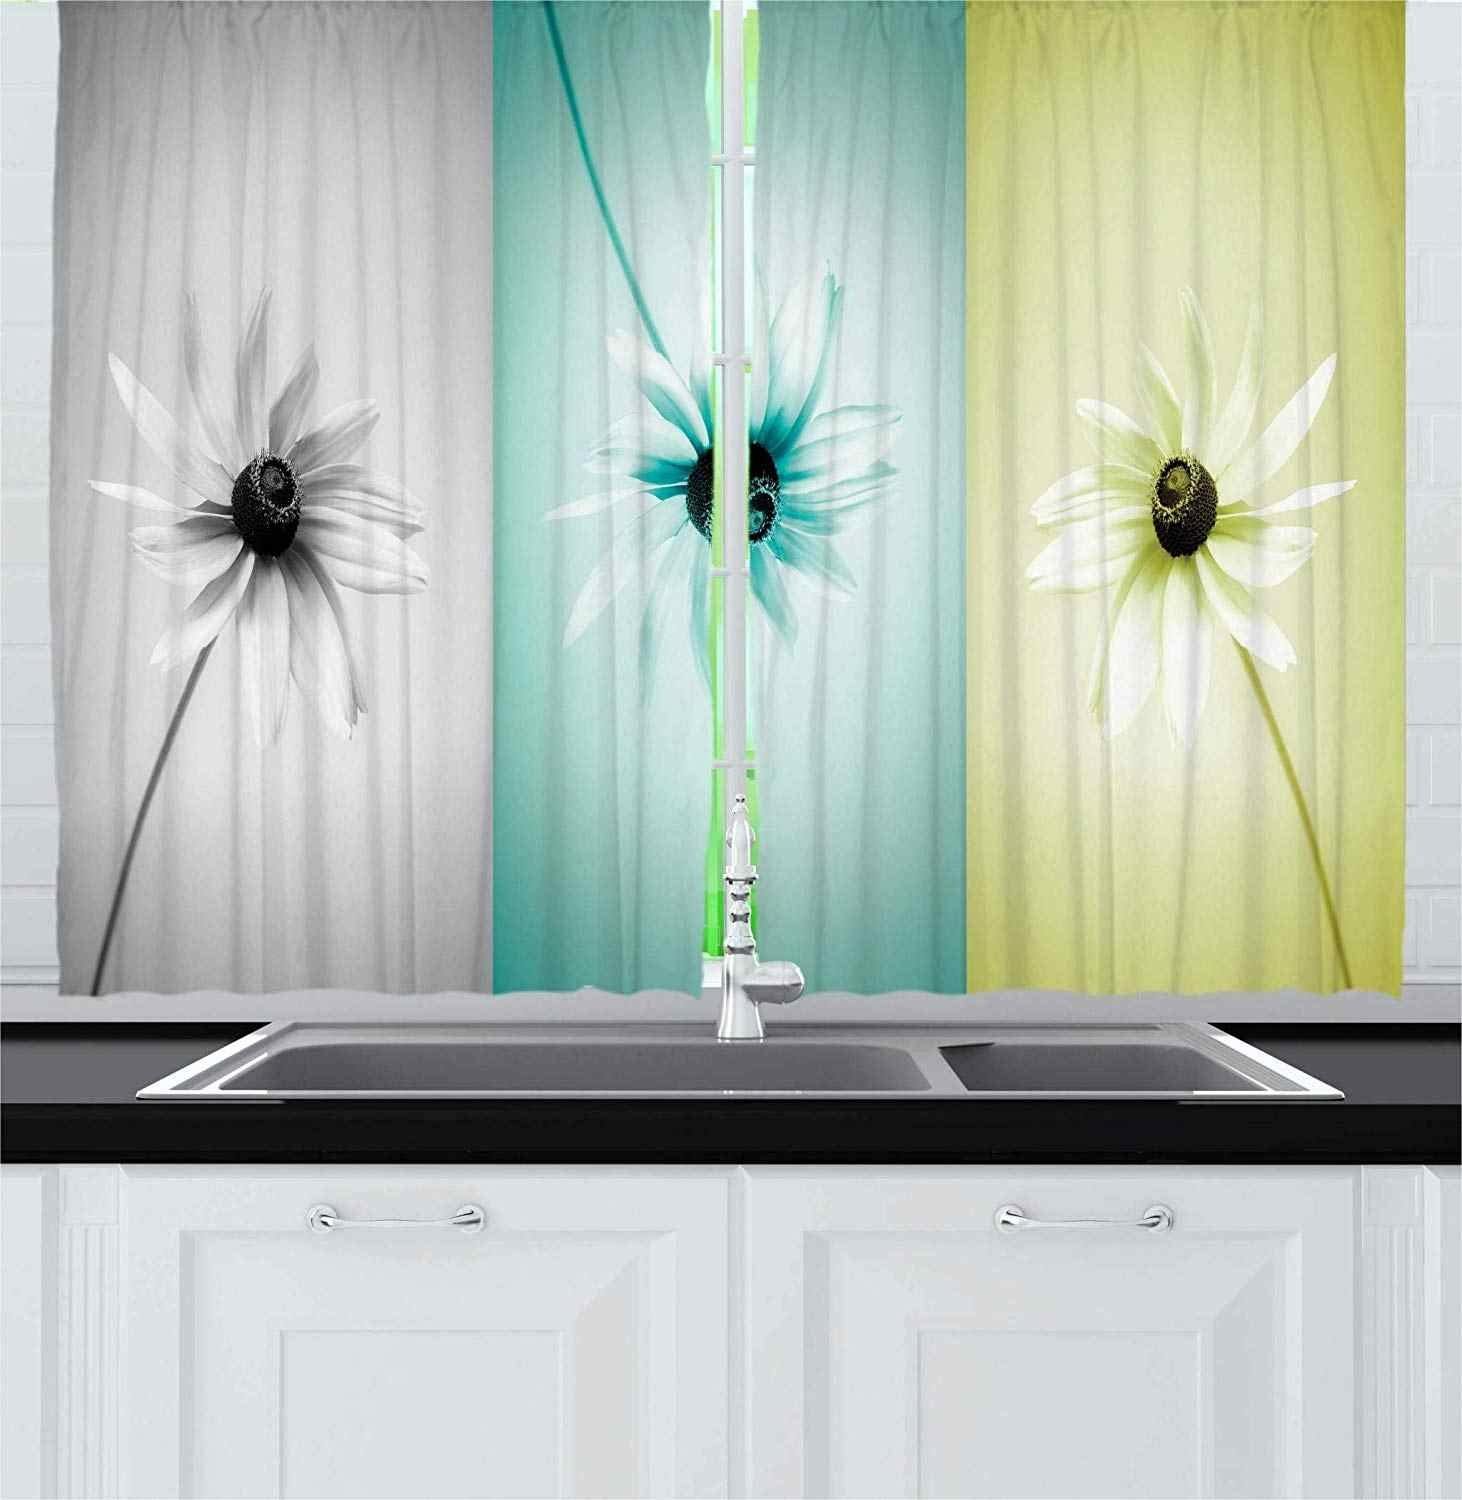 Abstract Curtains Daisy Flowers in Different Featured Framed Saturated Artsy Image Window Drapes for Turquoise Grey Living Room